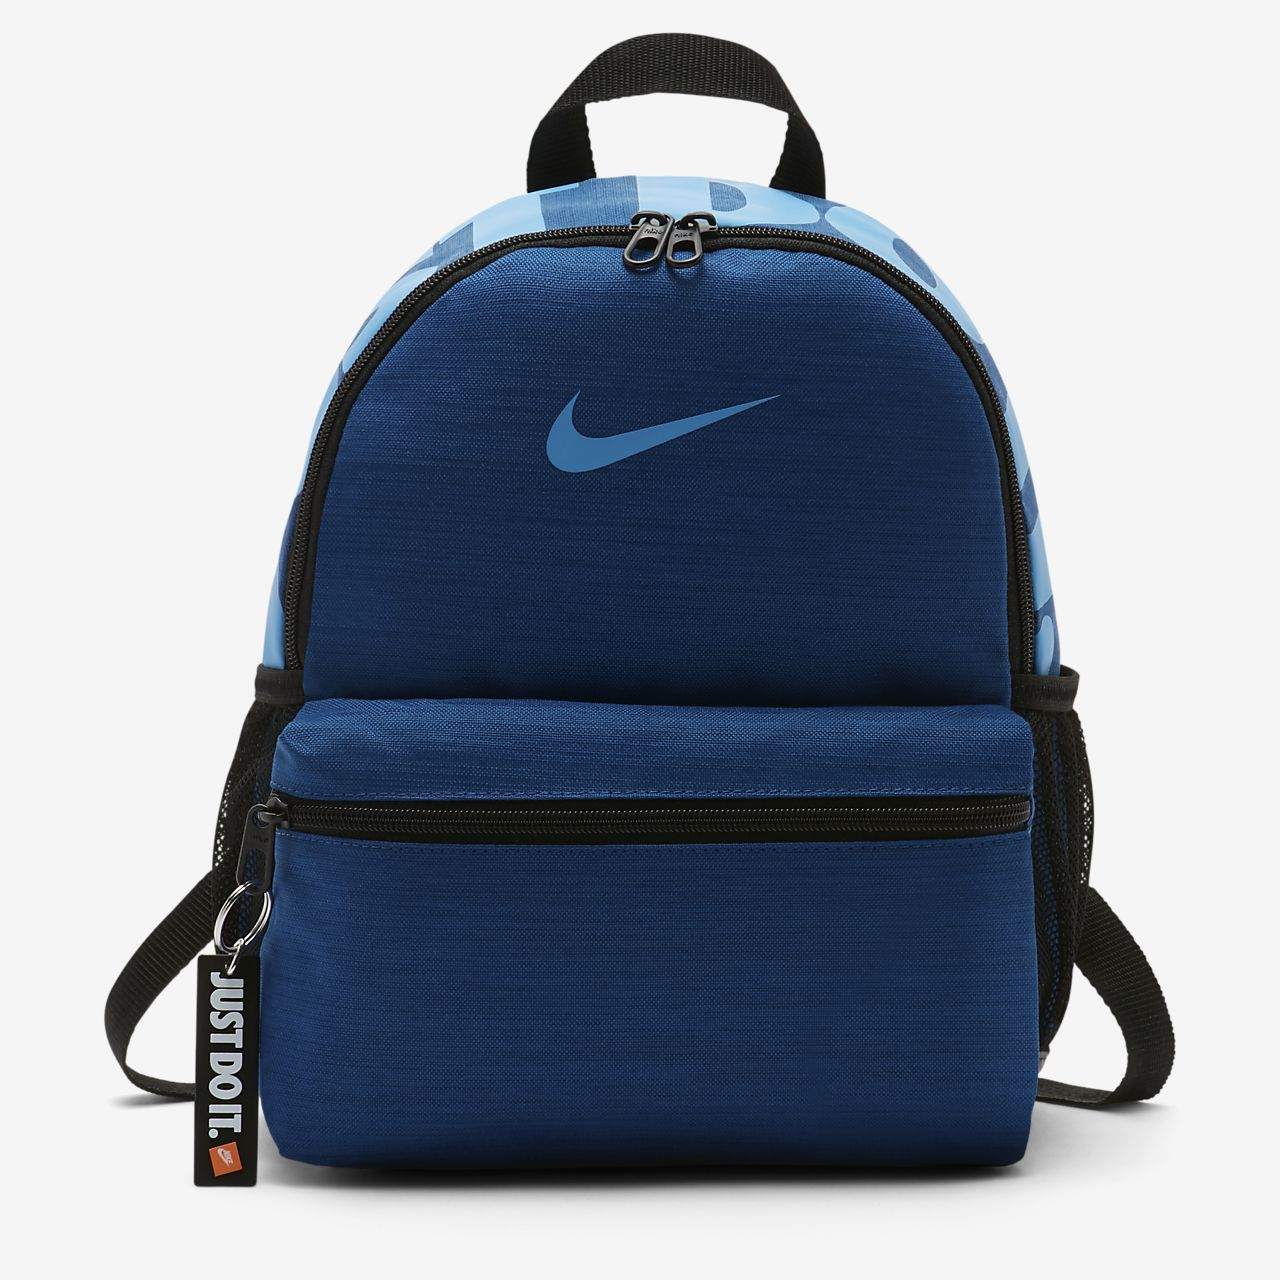 It Pour EnfantminiCa Do Sac À Dos Nike Brasilia Just ulKT1JcF3